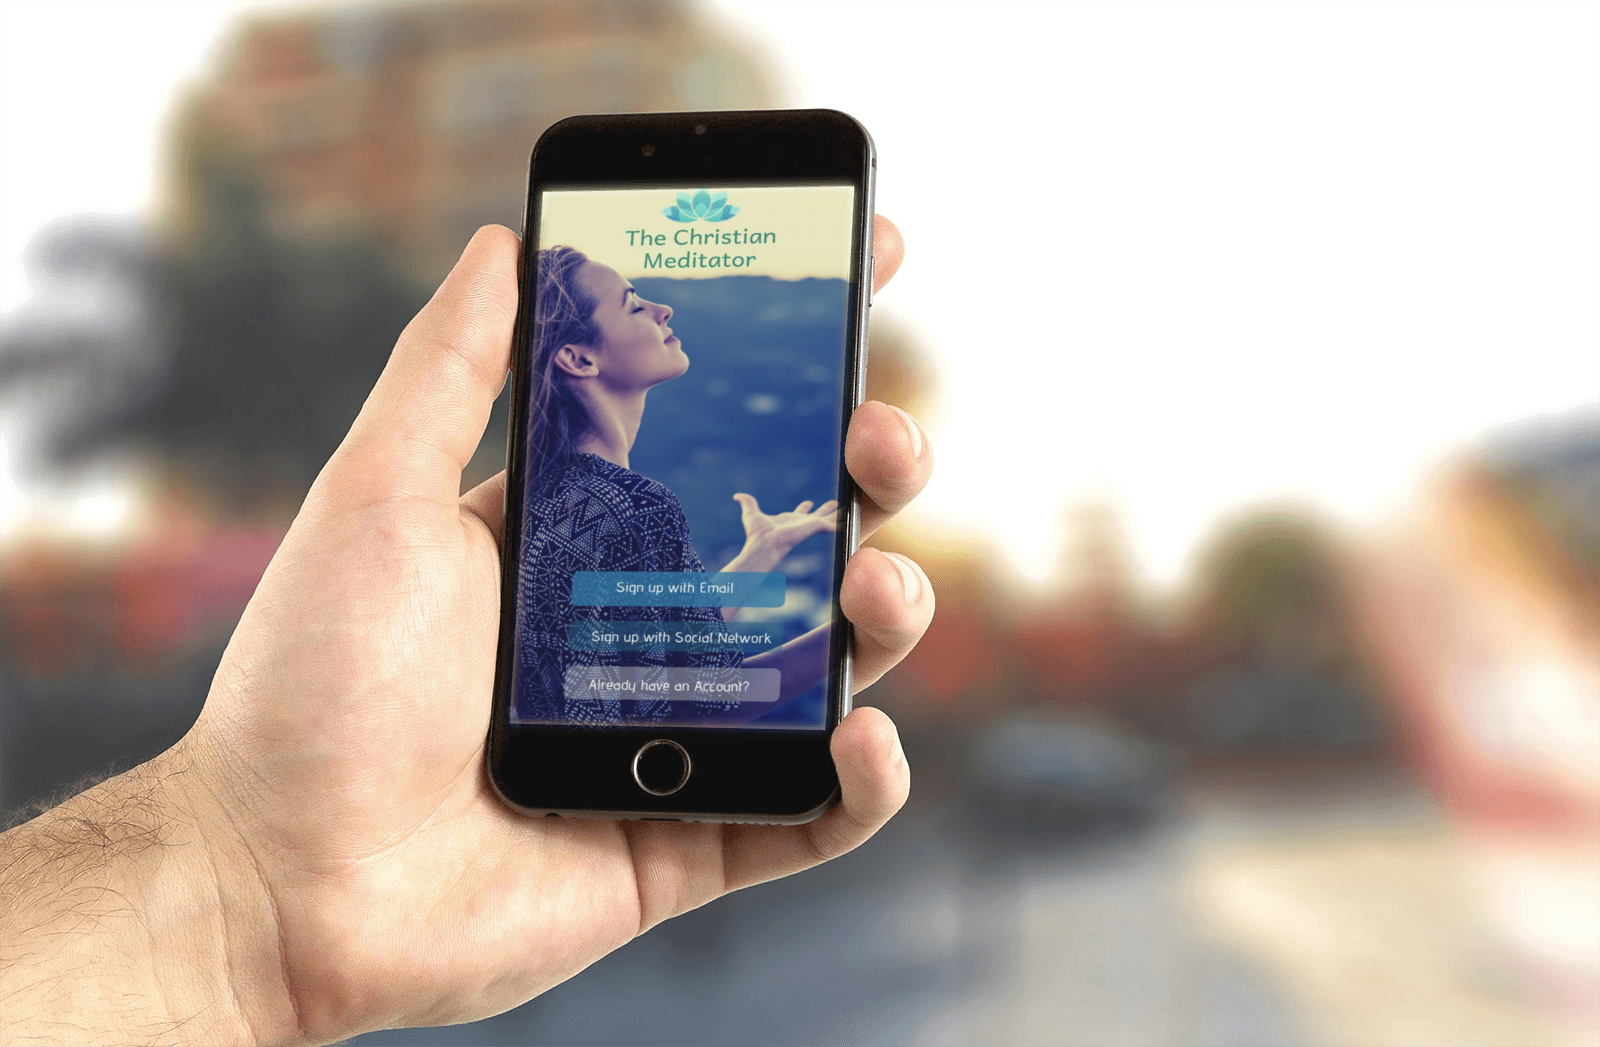 The Christian Meditator App